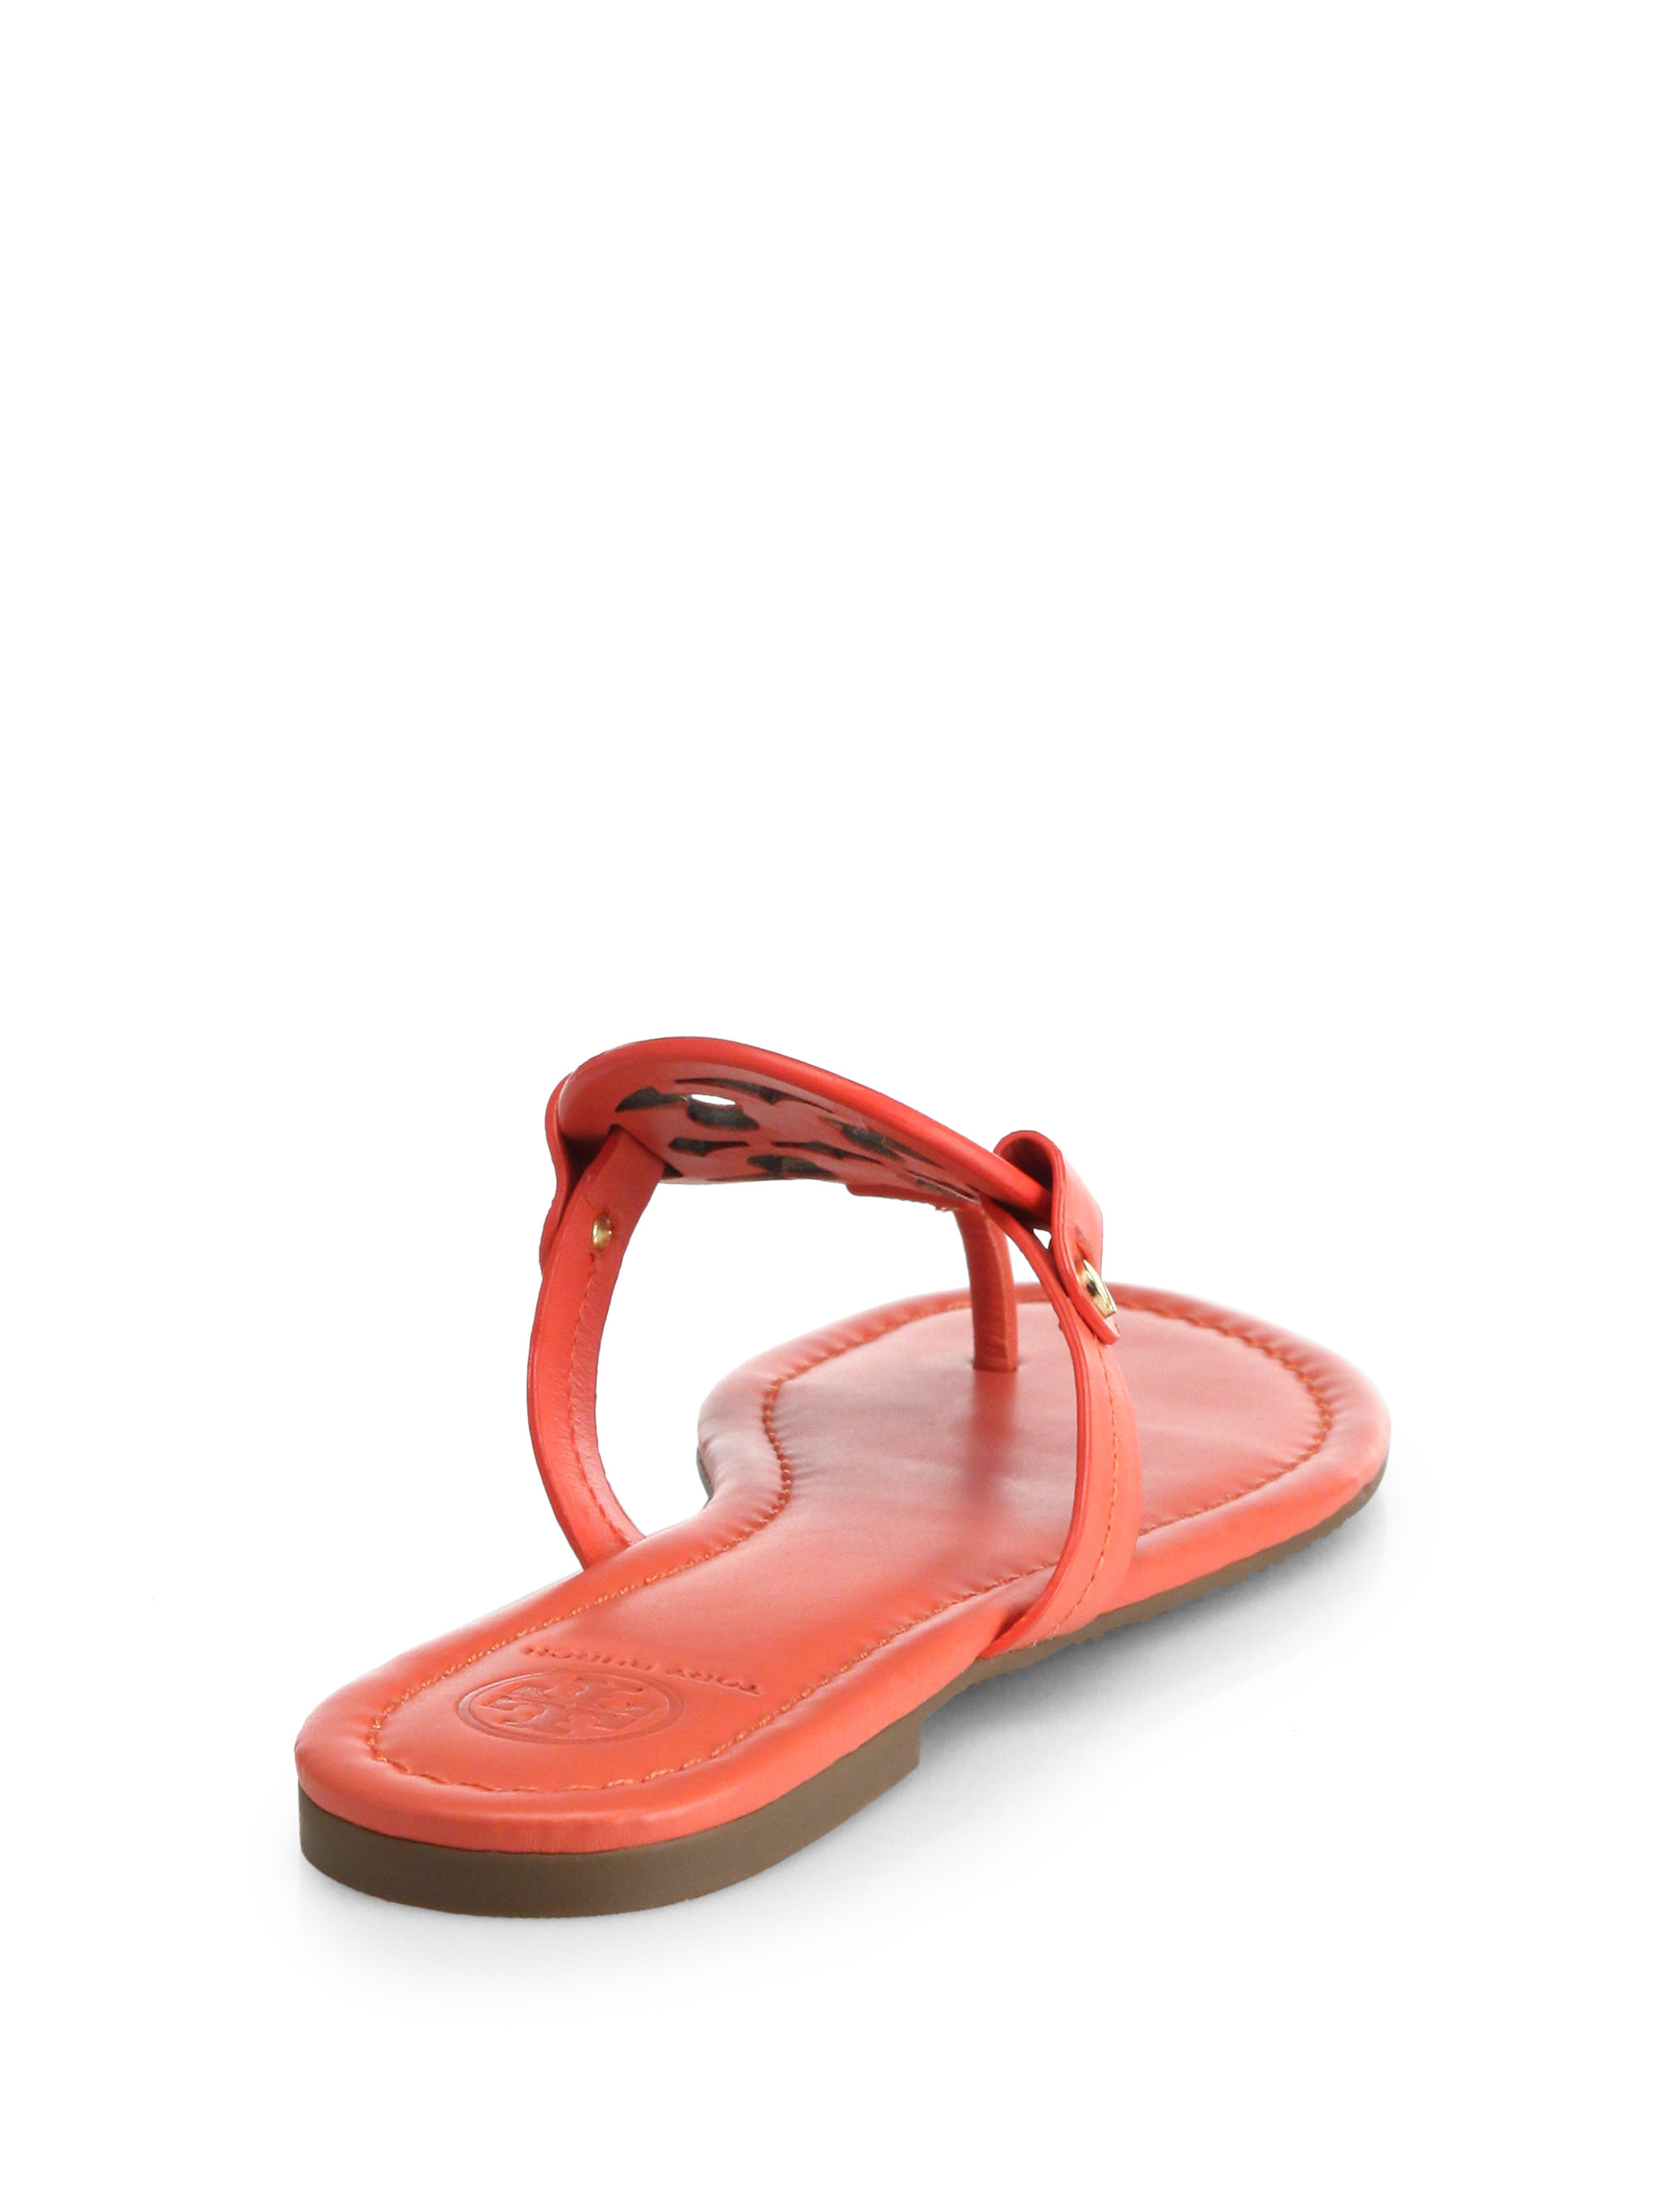 Tory Burch Miller Leather Logo Thong Sandals In Orange Lyst